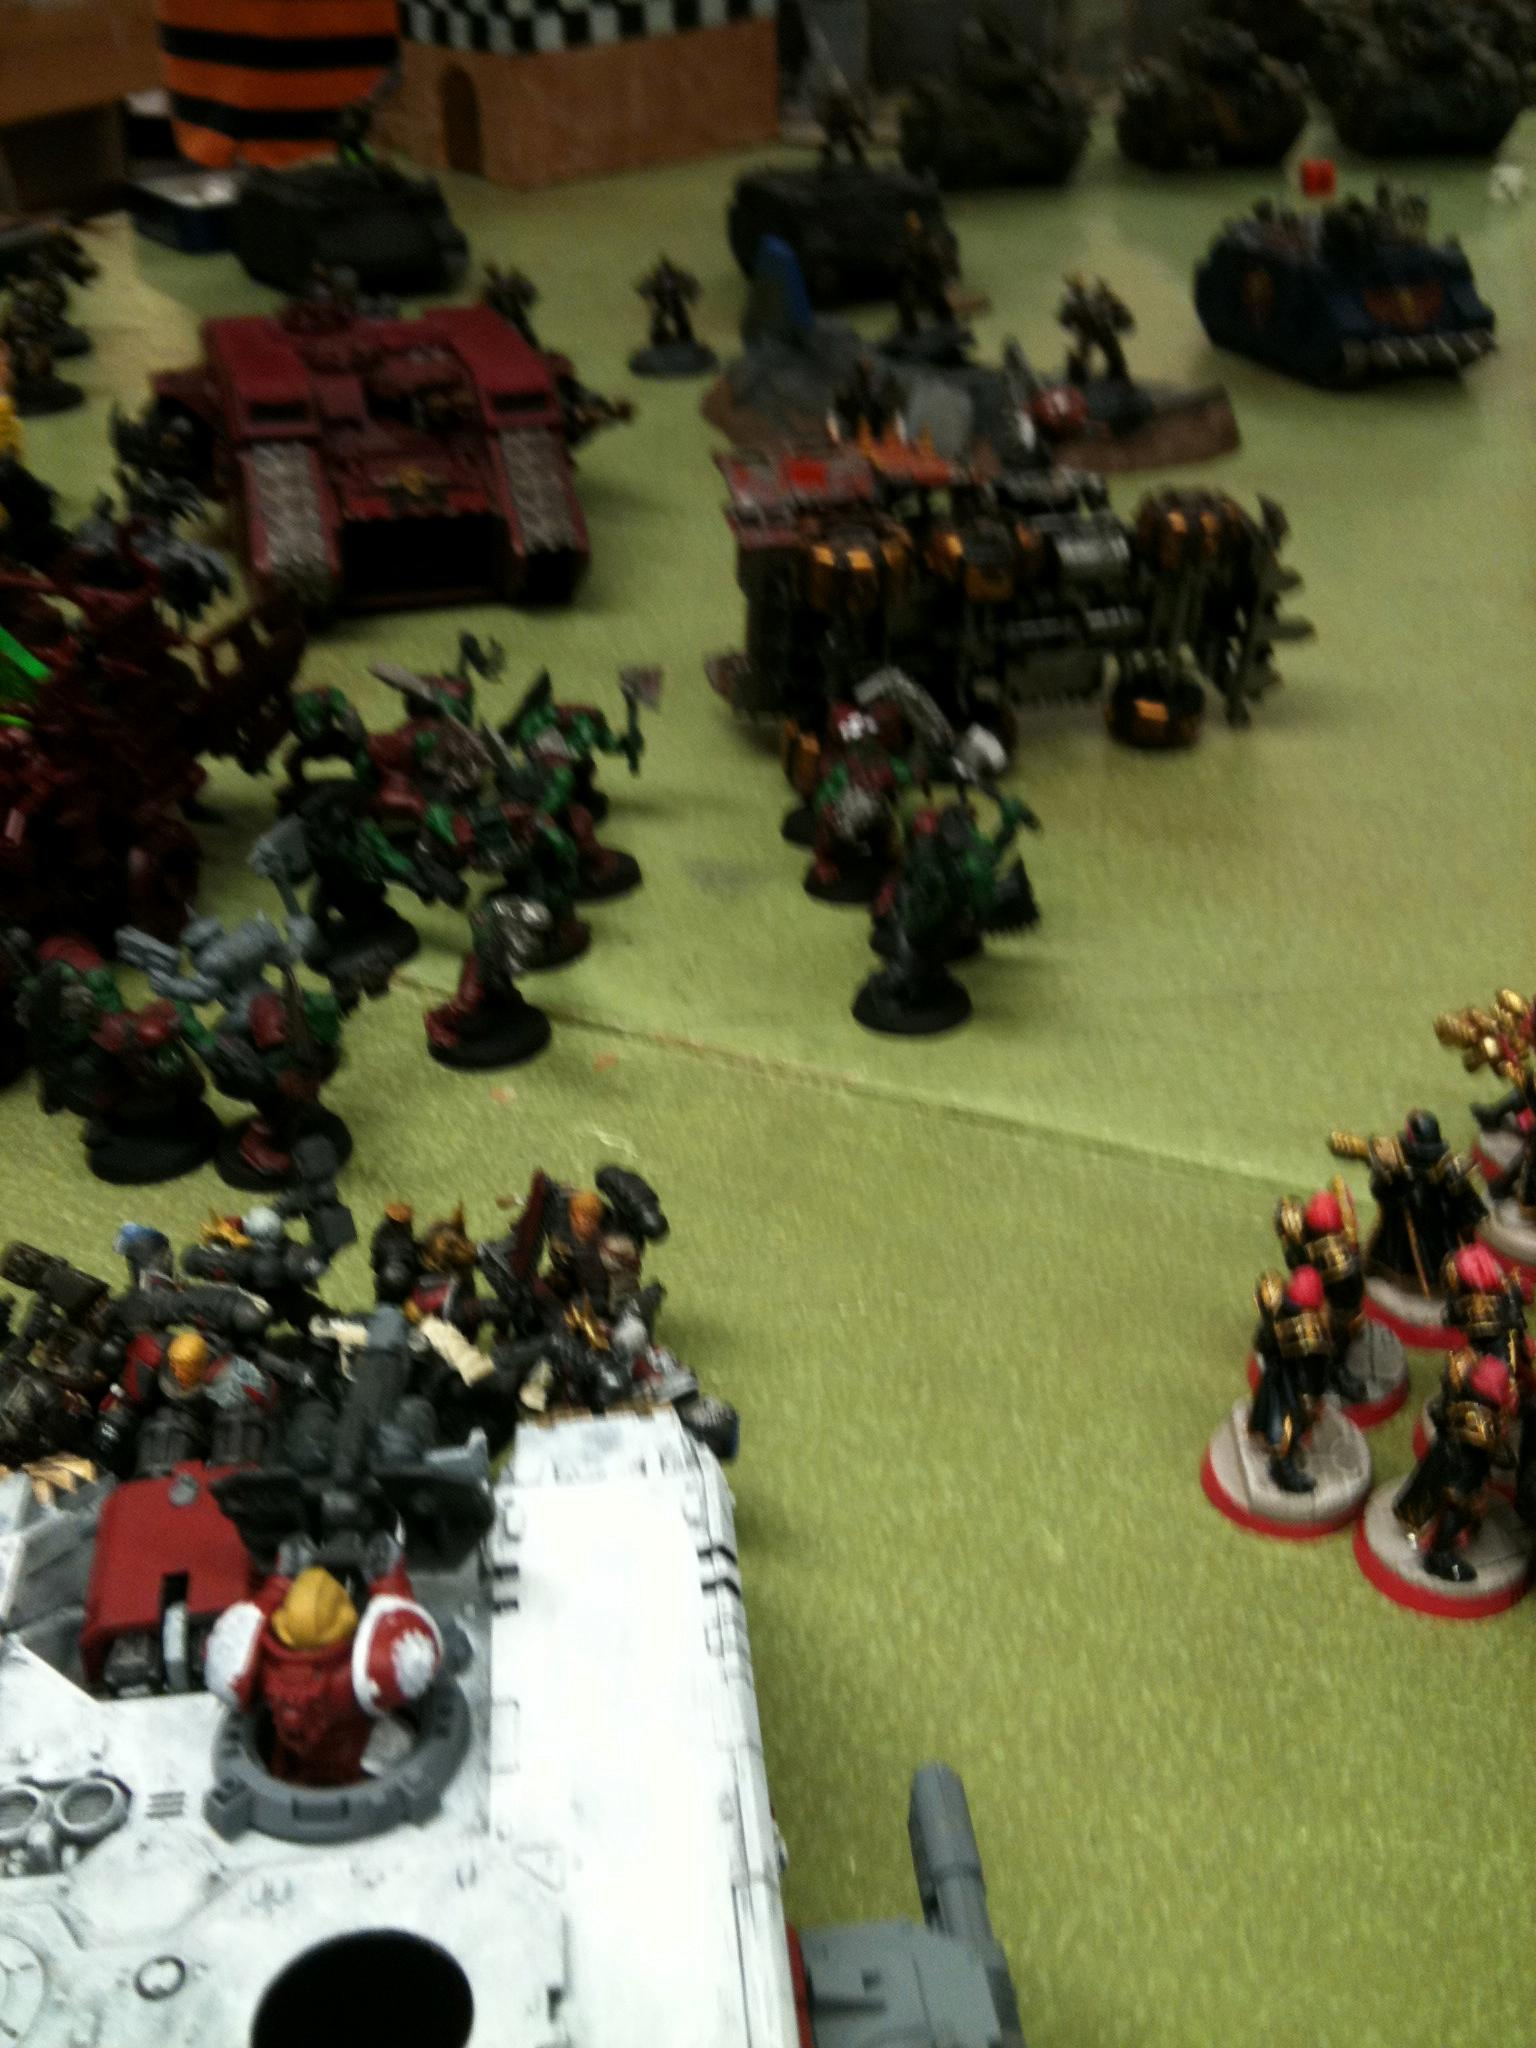 The orks' rush is slowed but not halted